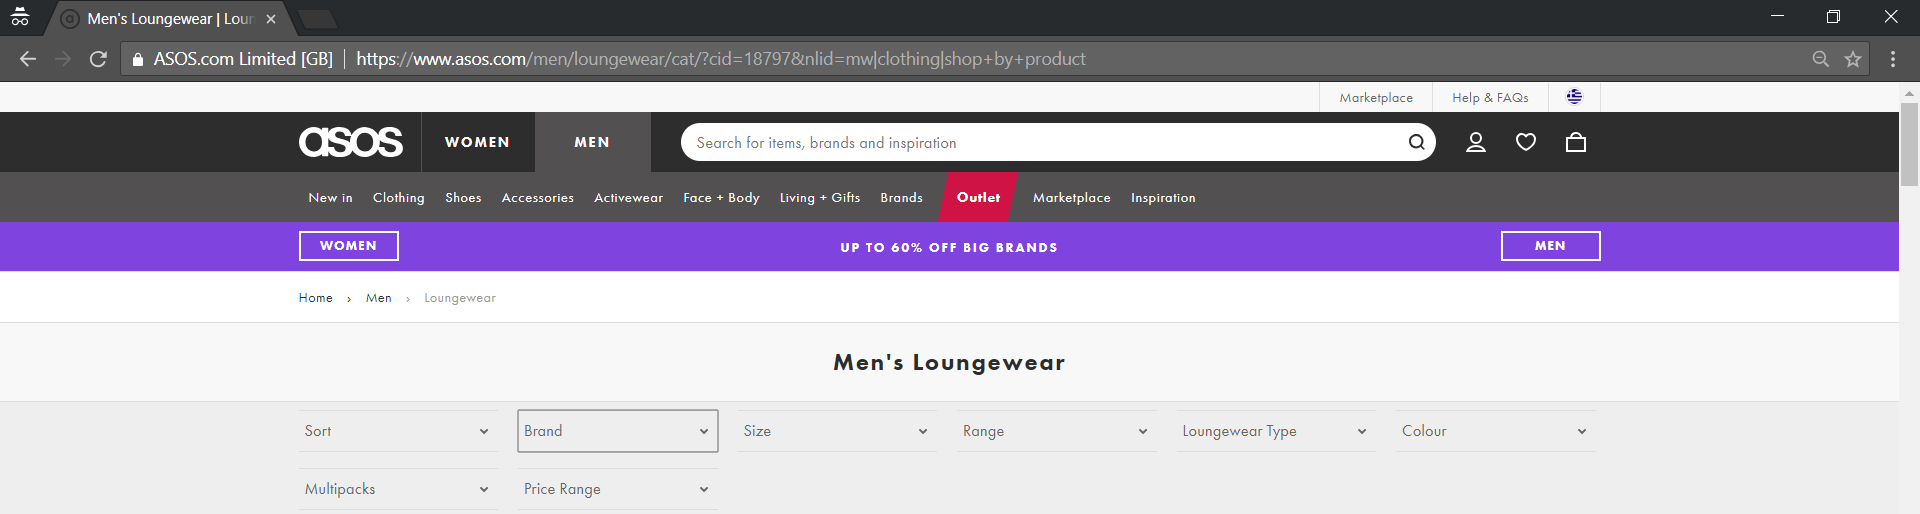 you choose in Asos' secondary menu that you're looking for men's loungewear, this is what the URL looks like: